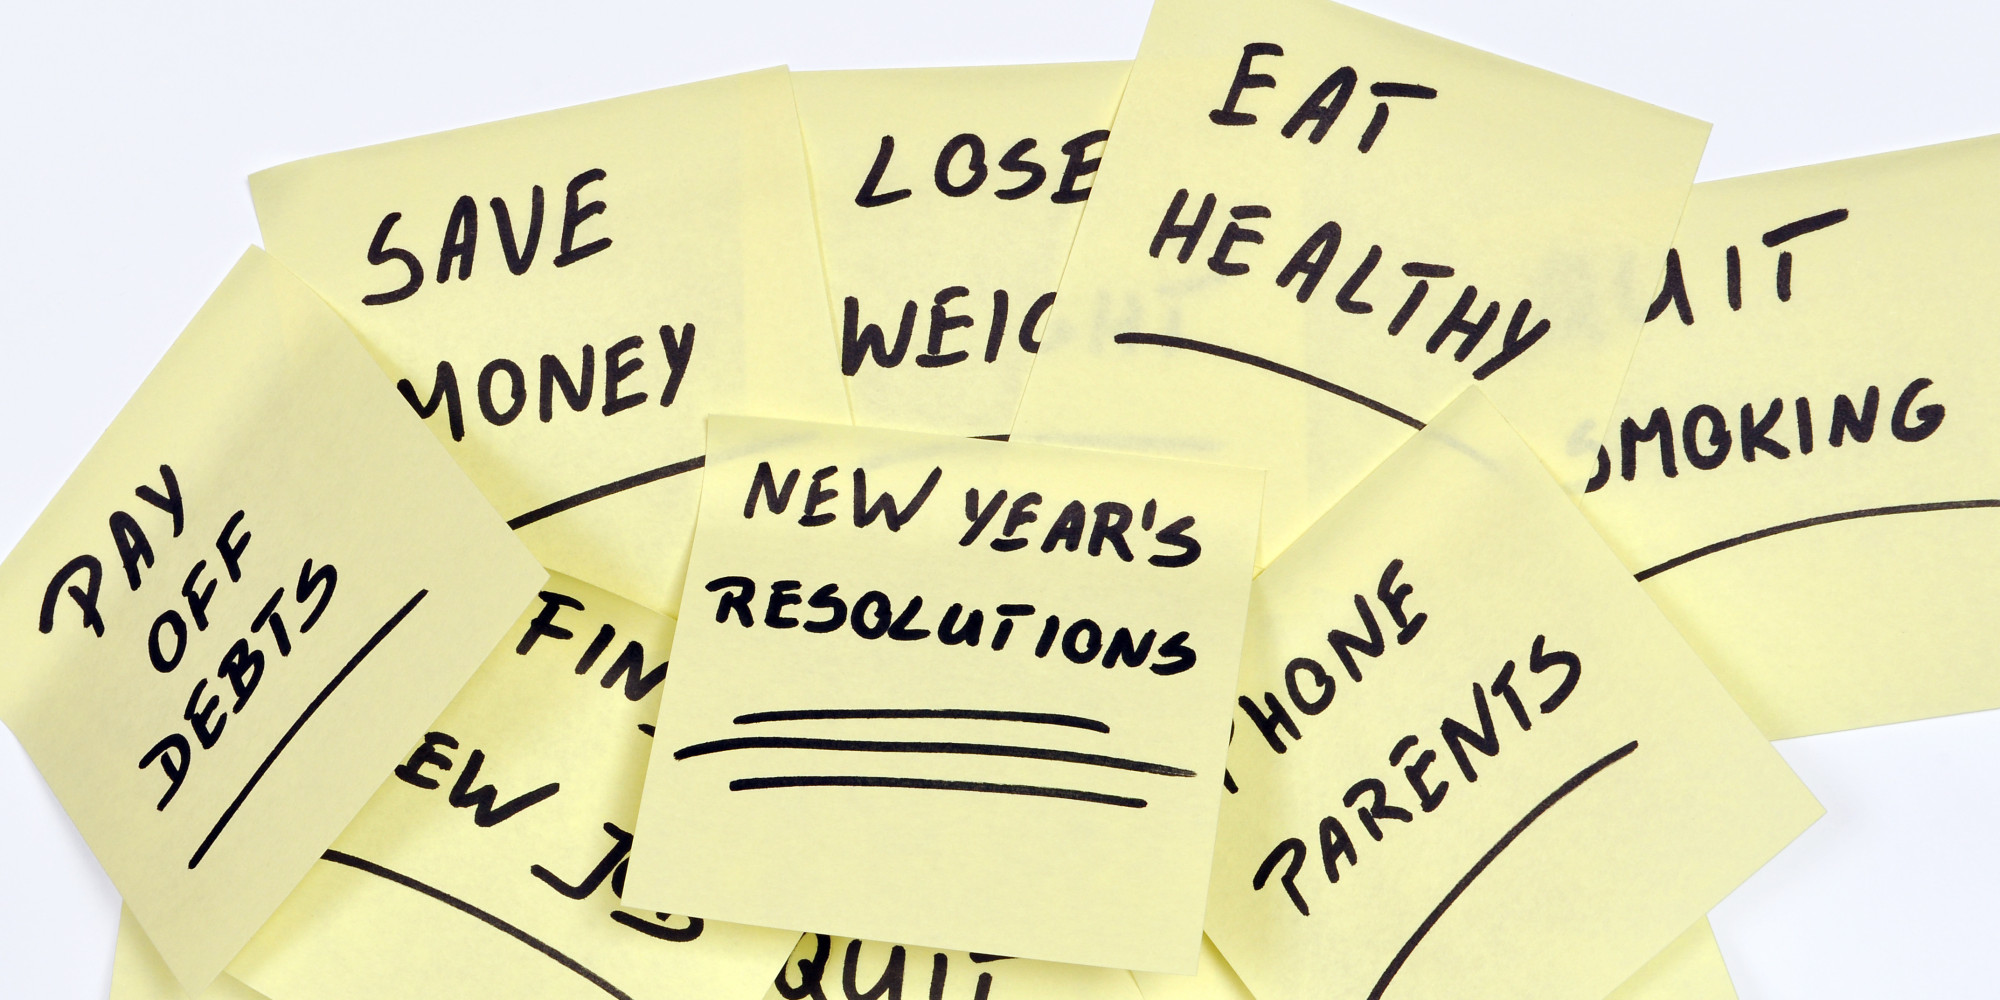 fourteen-2014-new-year-s-resolutions-for-progressives-and-one-for-wwqxn7-clipart